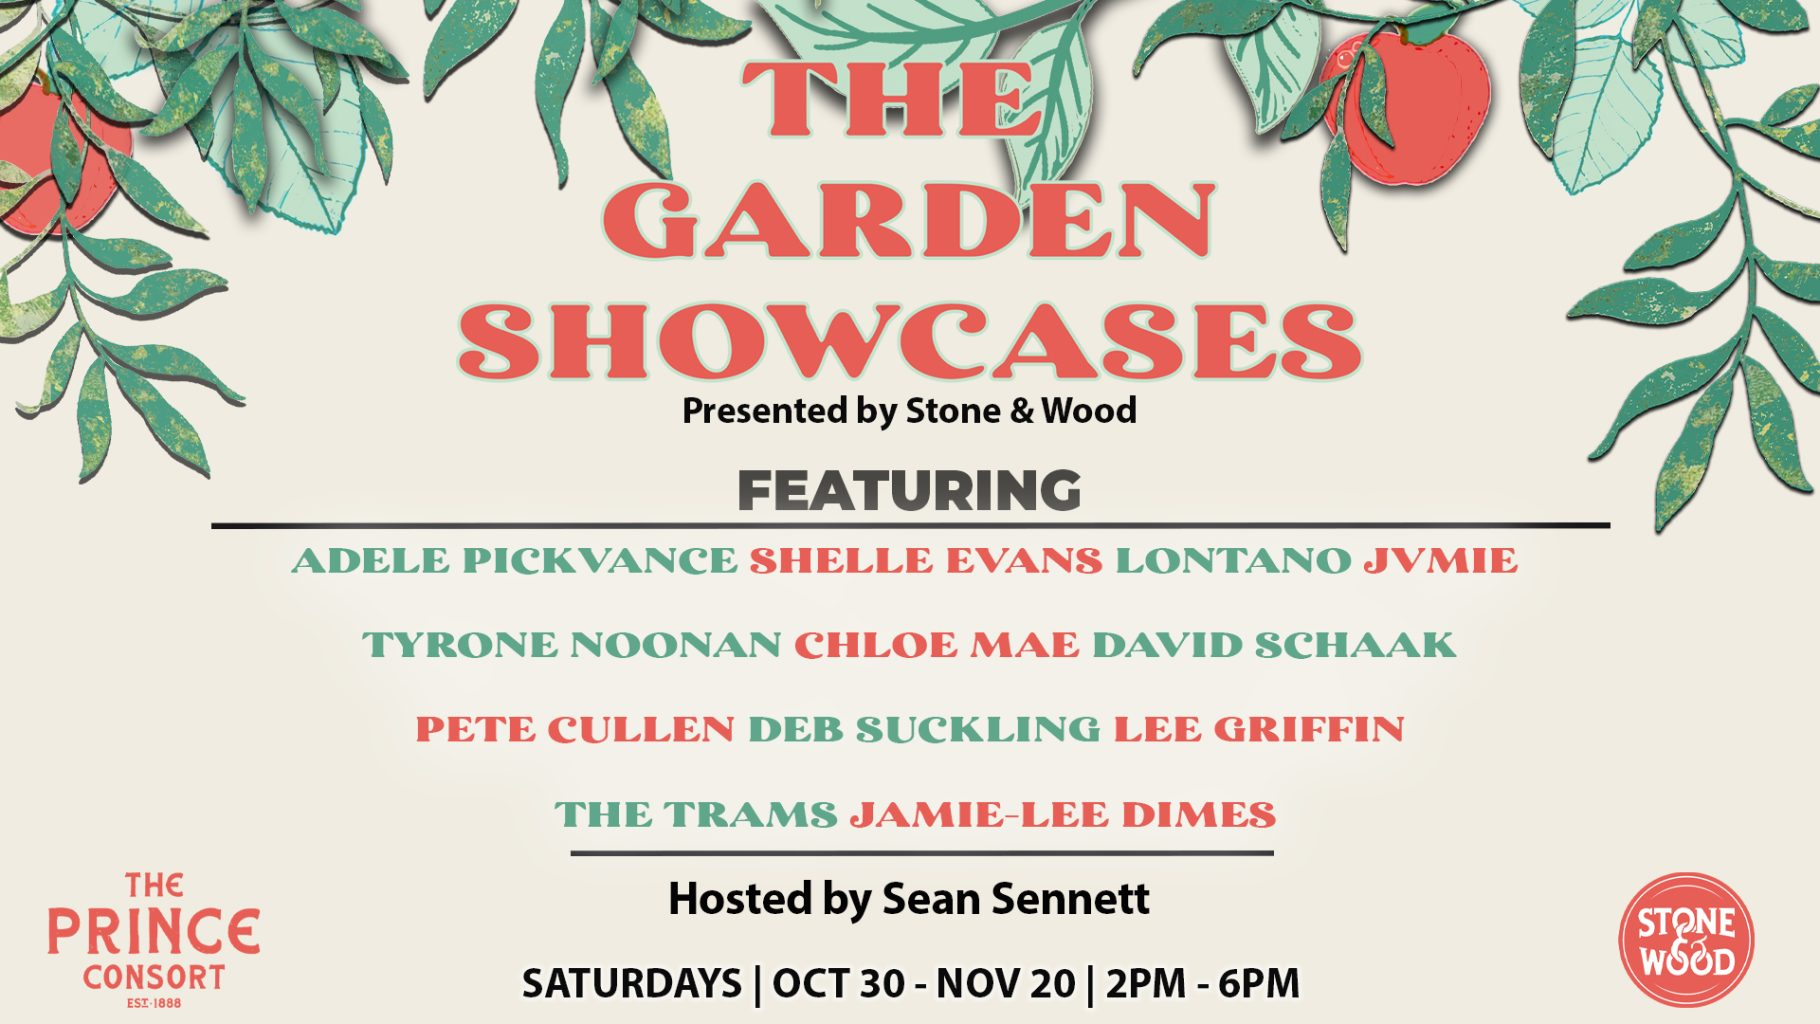 The Garden Showcases Presented by Stone & Wood